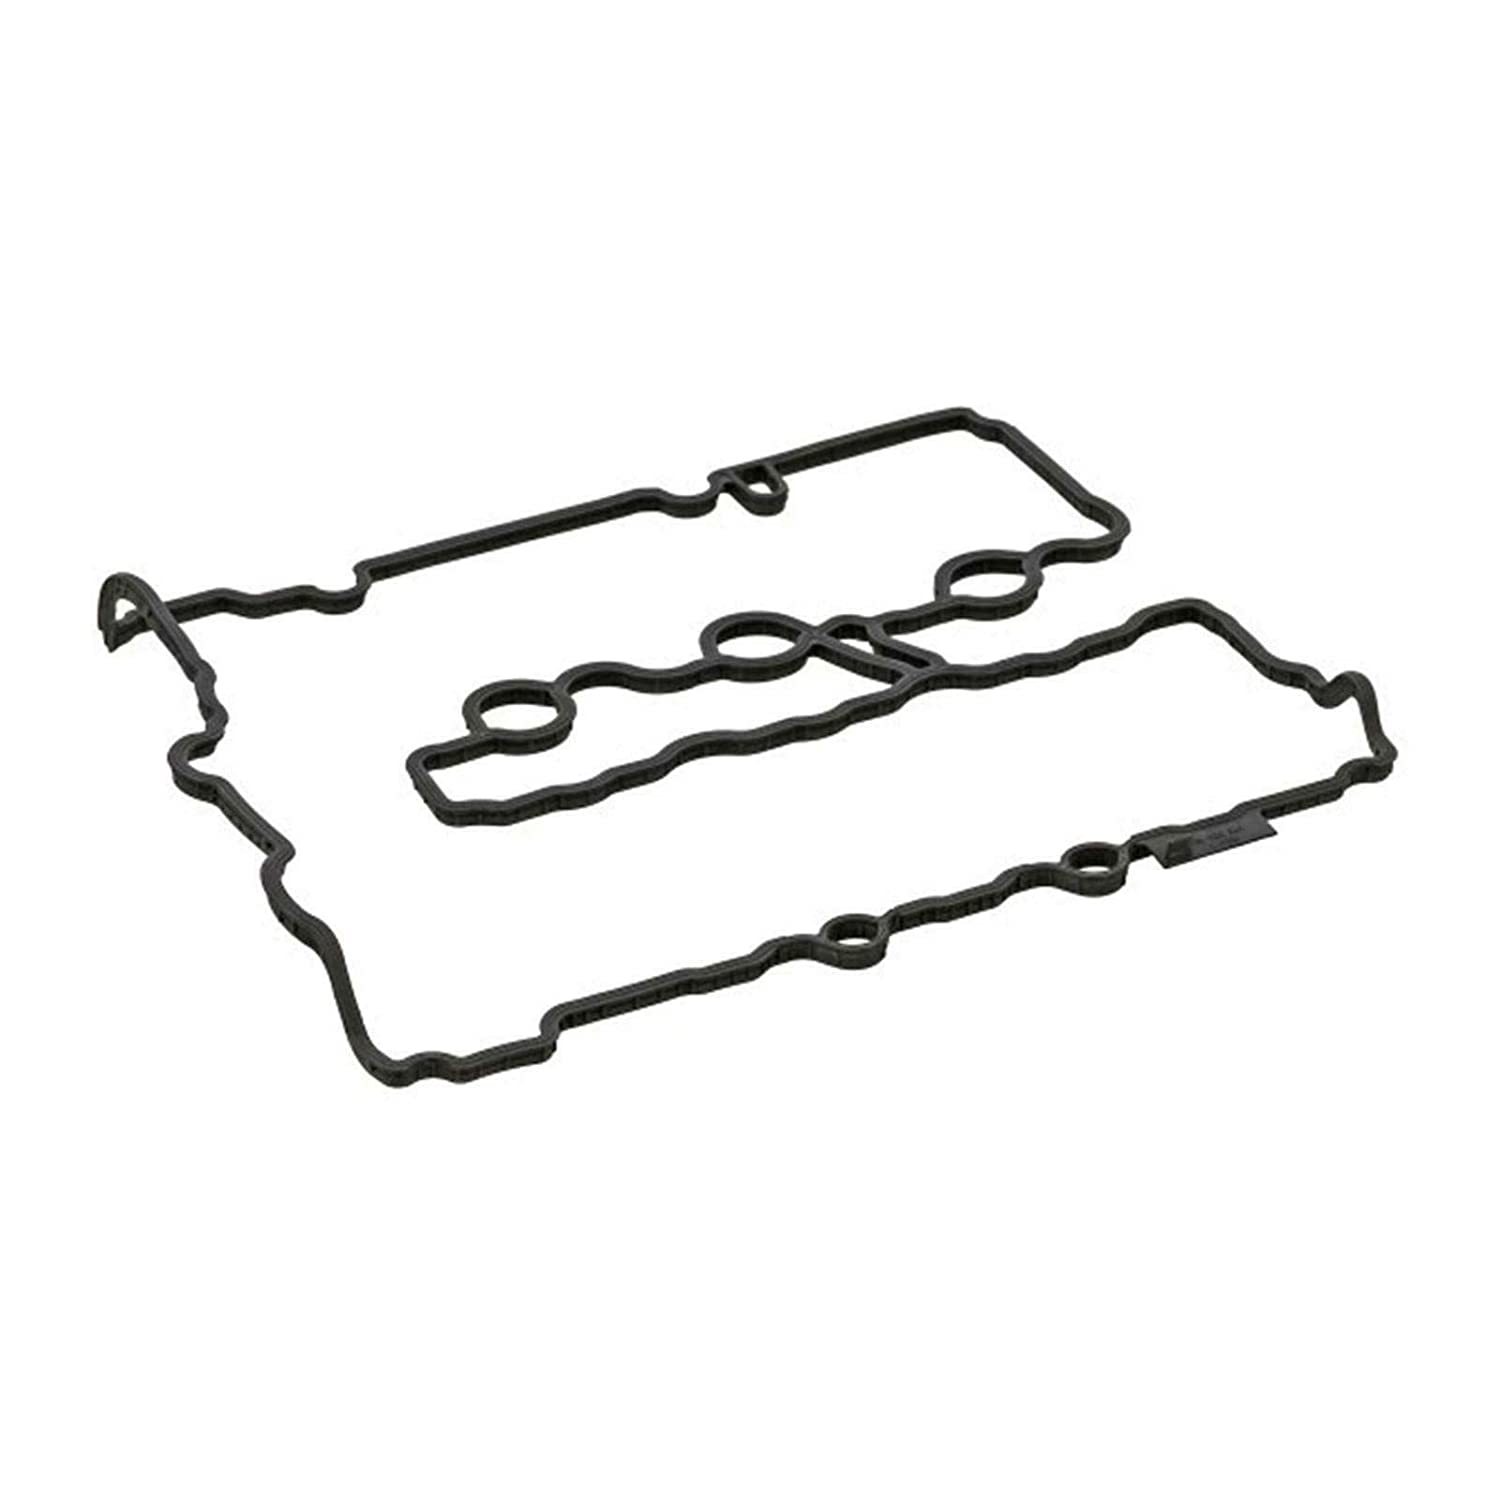 Ensun Engine Valve Cover Gasket for 2014-2017 BMW i8 Replaces 11128618515